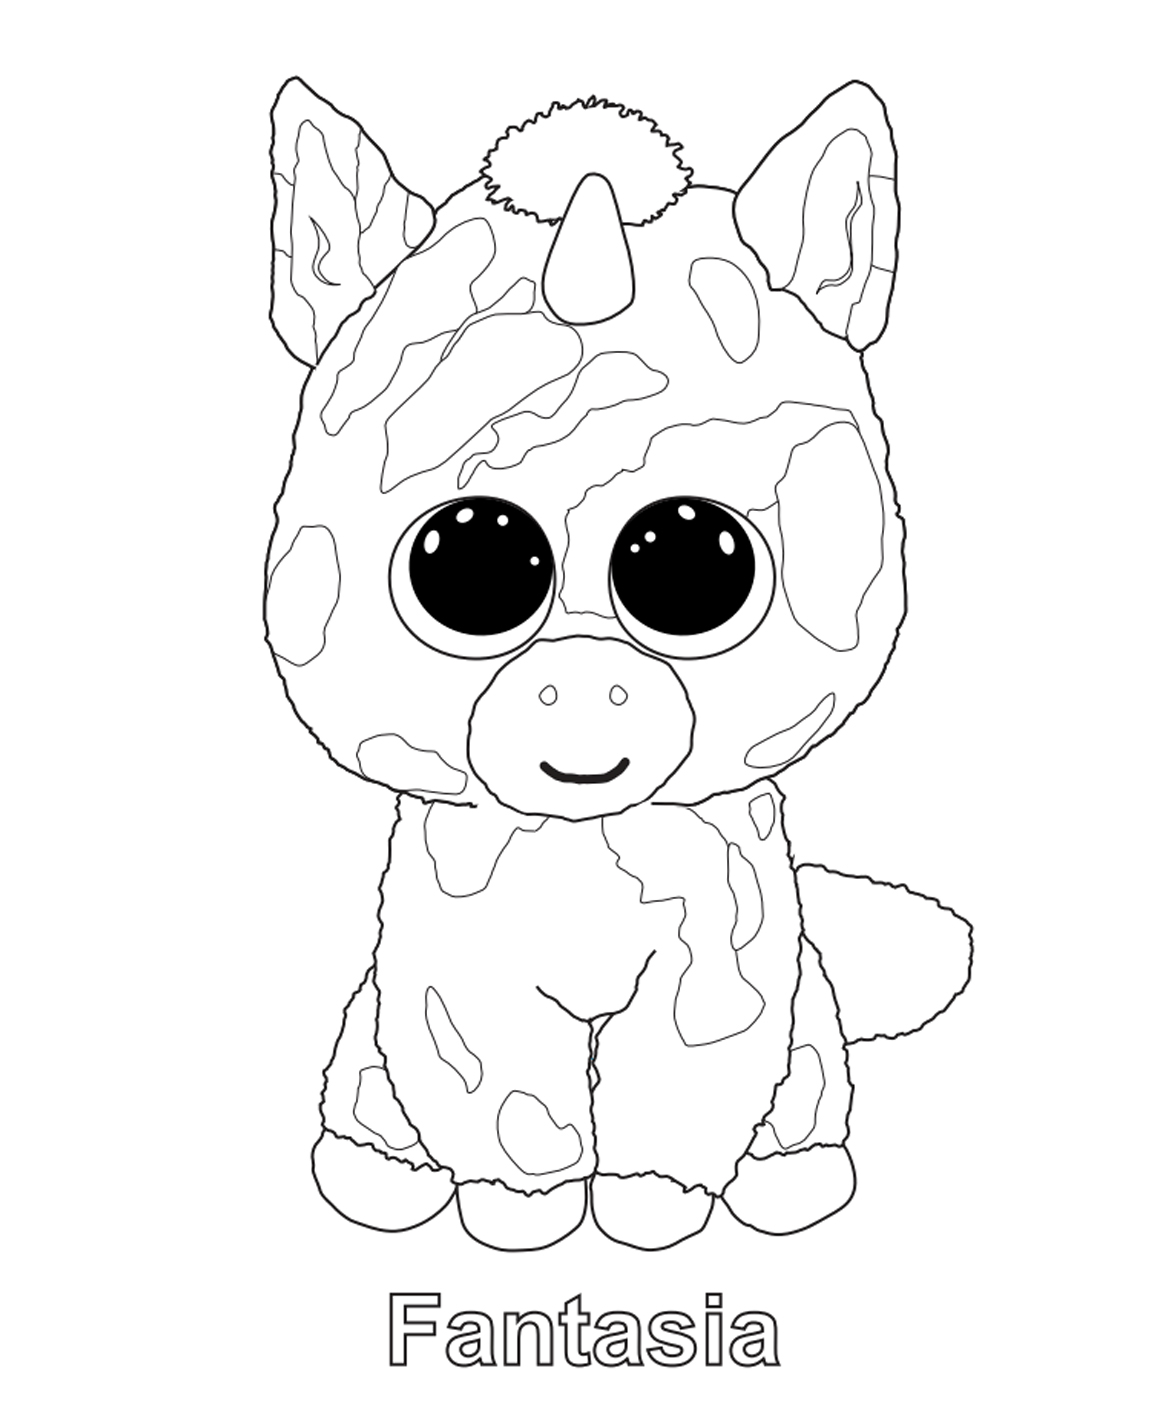 1170x1420 Beeny Boo Ice Cube Coloring Pages Frozen Coloring Pages Ice Cubes